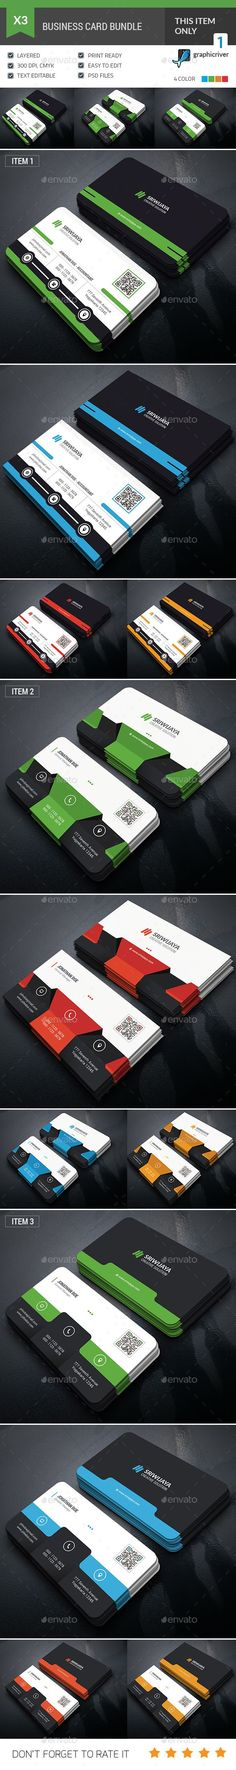 Dark #Business #Card Bundle - Corporate Business Cards Download here: https://graphicriver.net/item/dark-business-card-bundle/19904432?ref=alena994